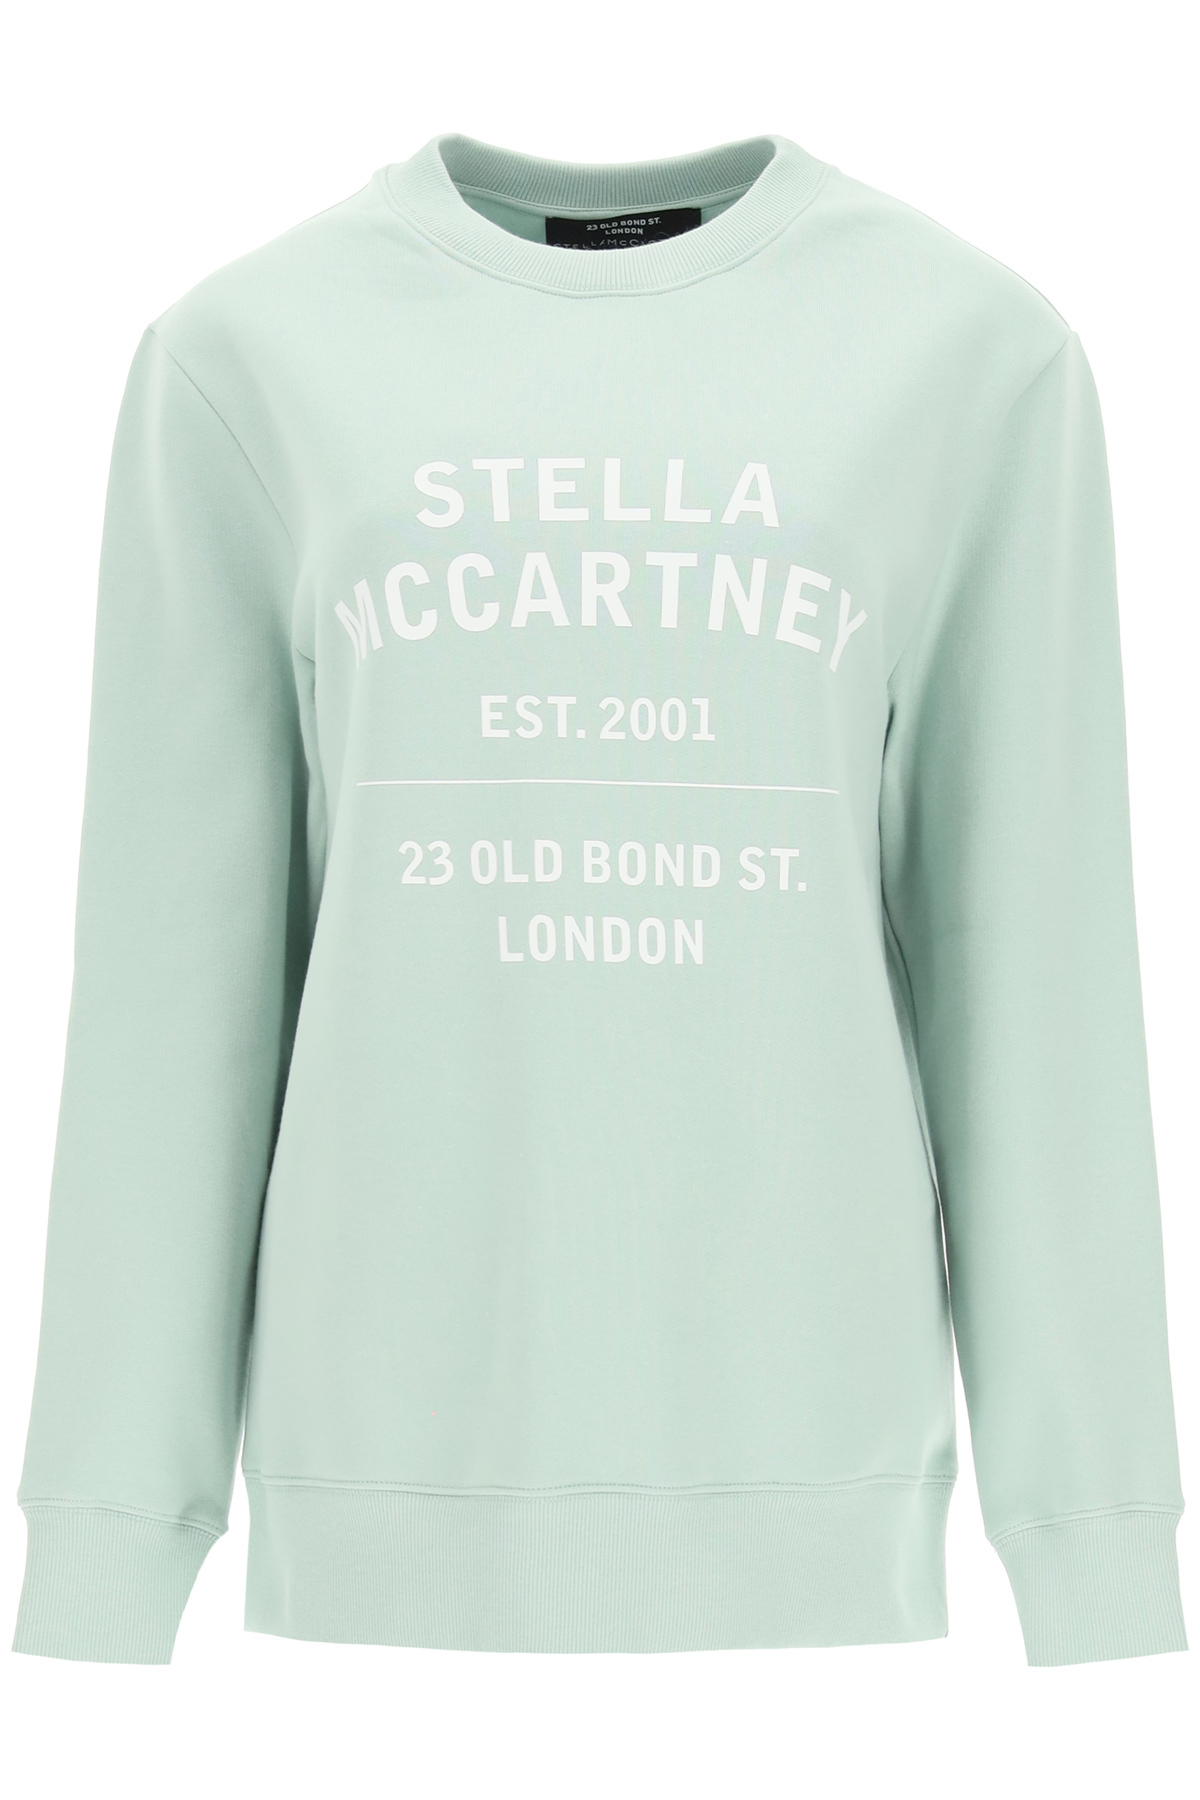 Stella Mccartney 0